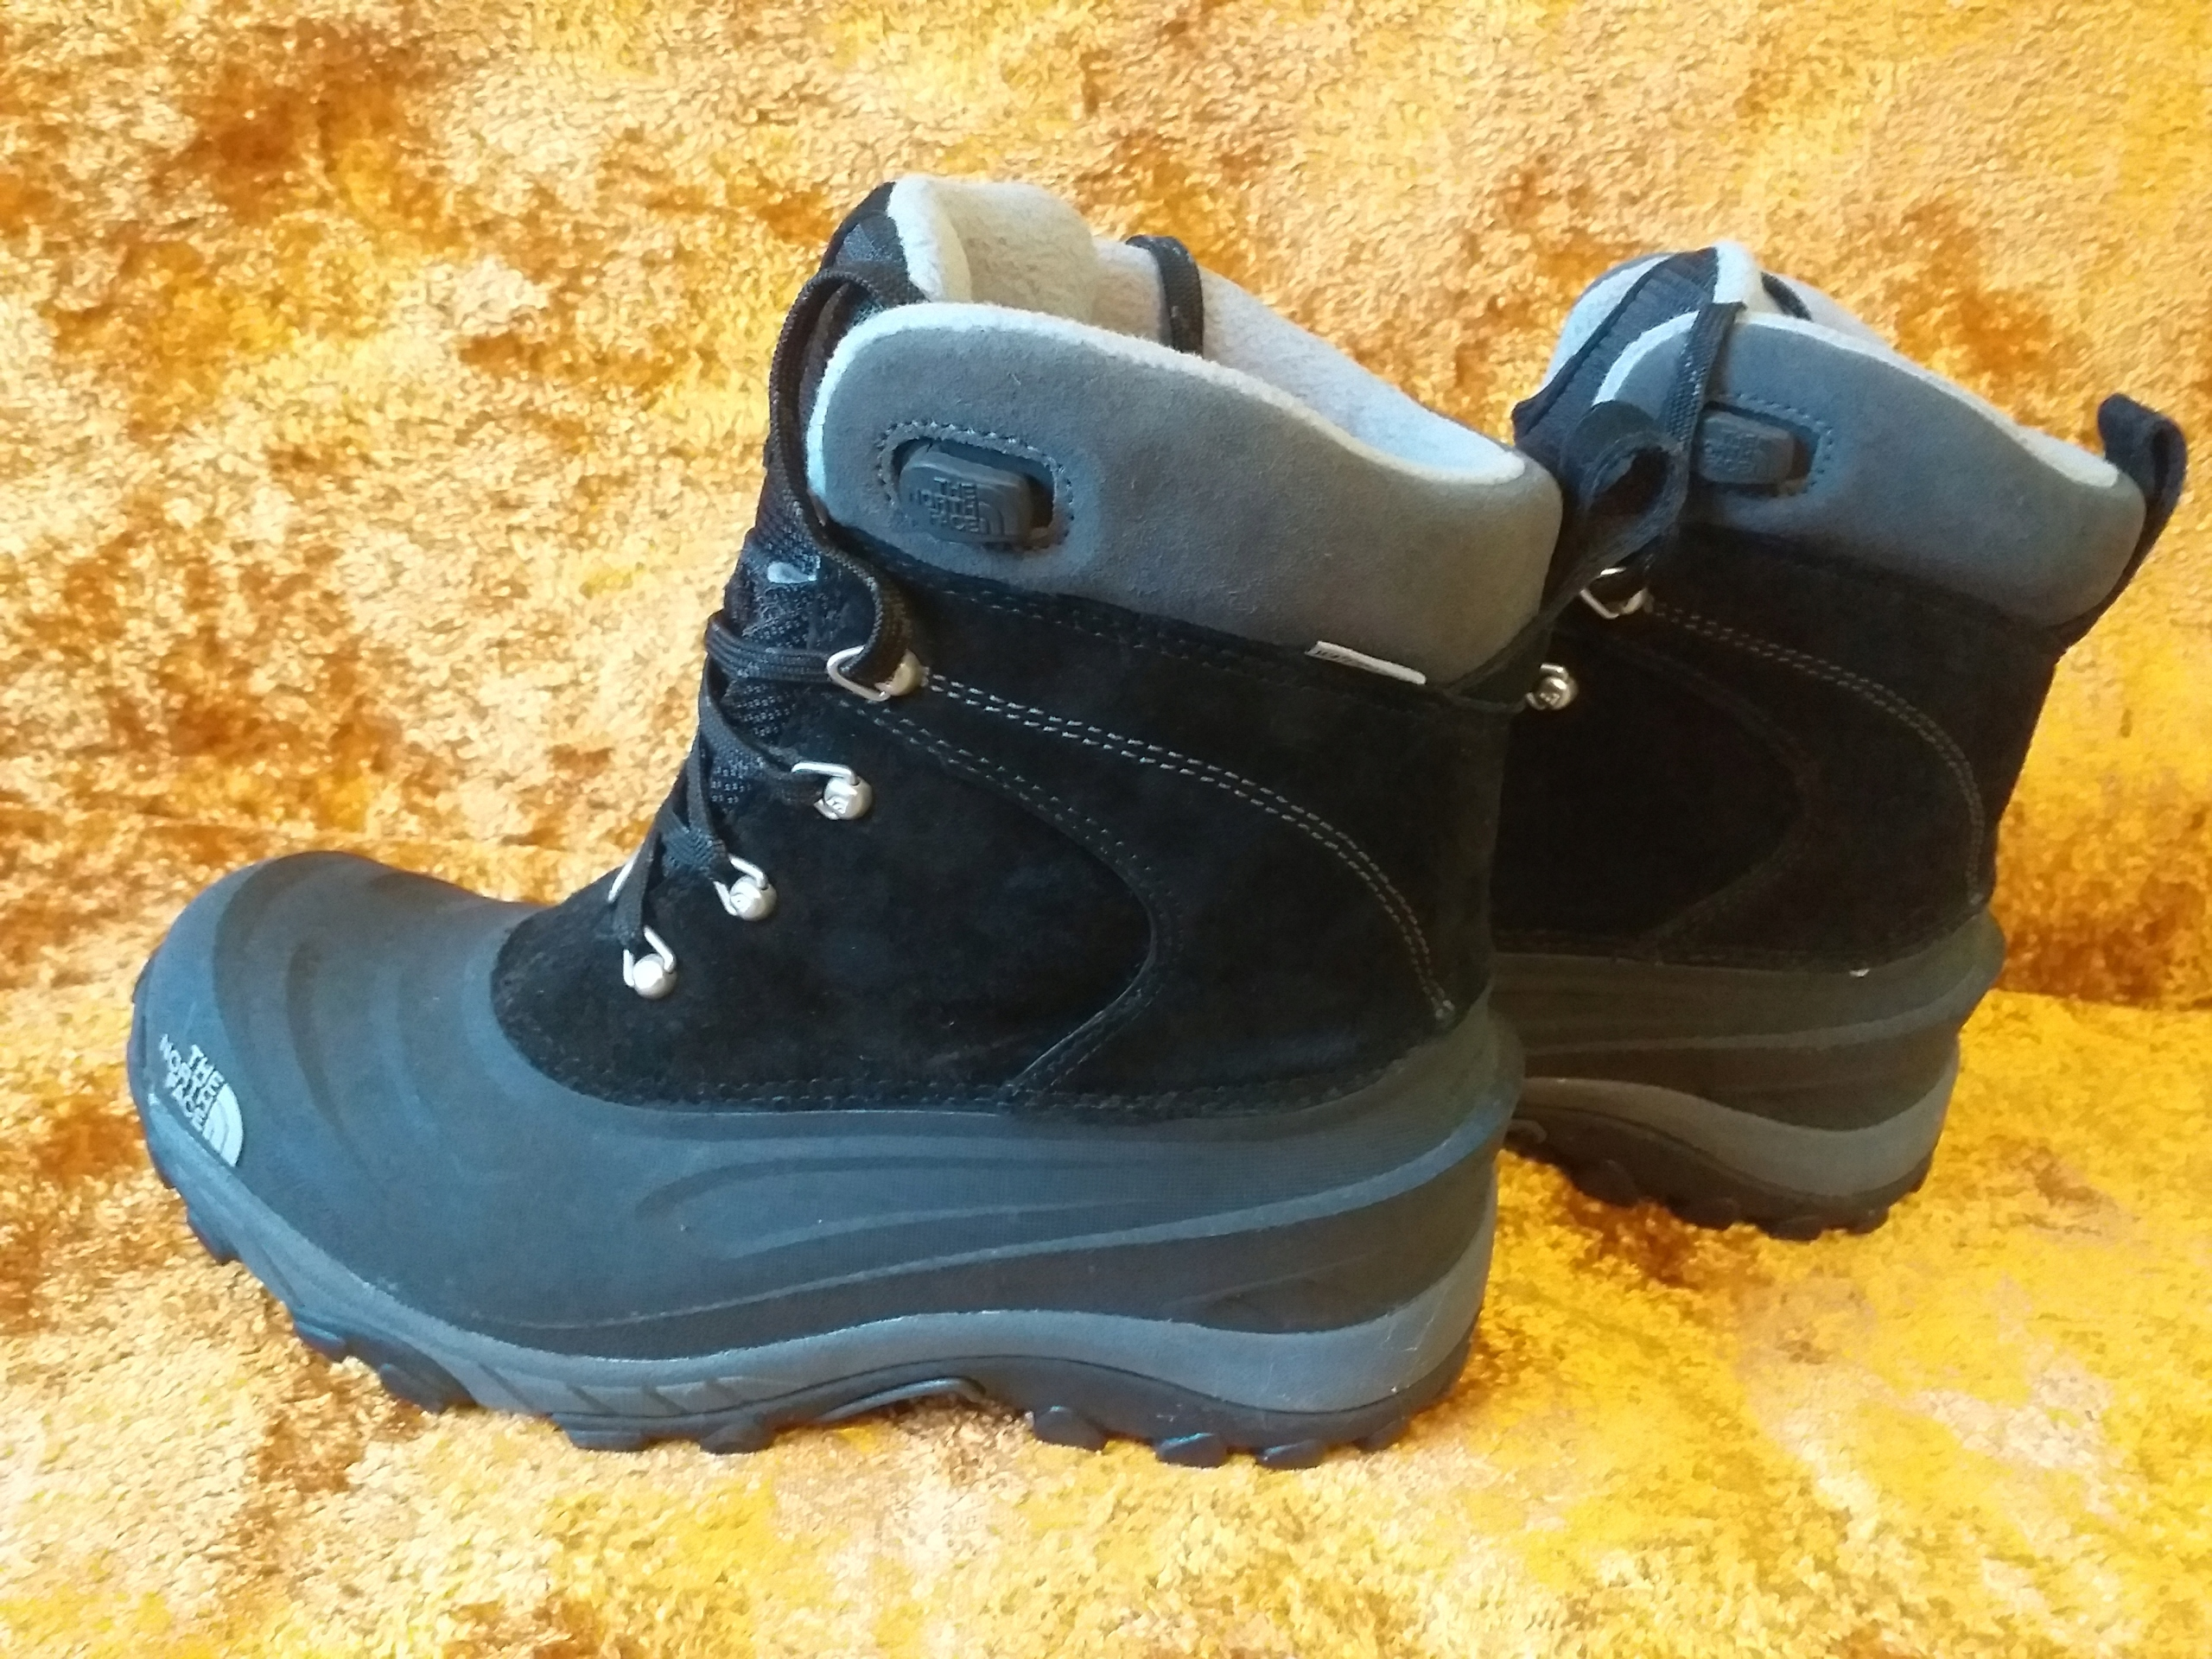 BUTY ZIMOWE THE NORTH FACE CHILKAT III ROZ.42